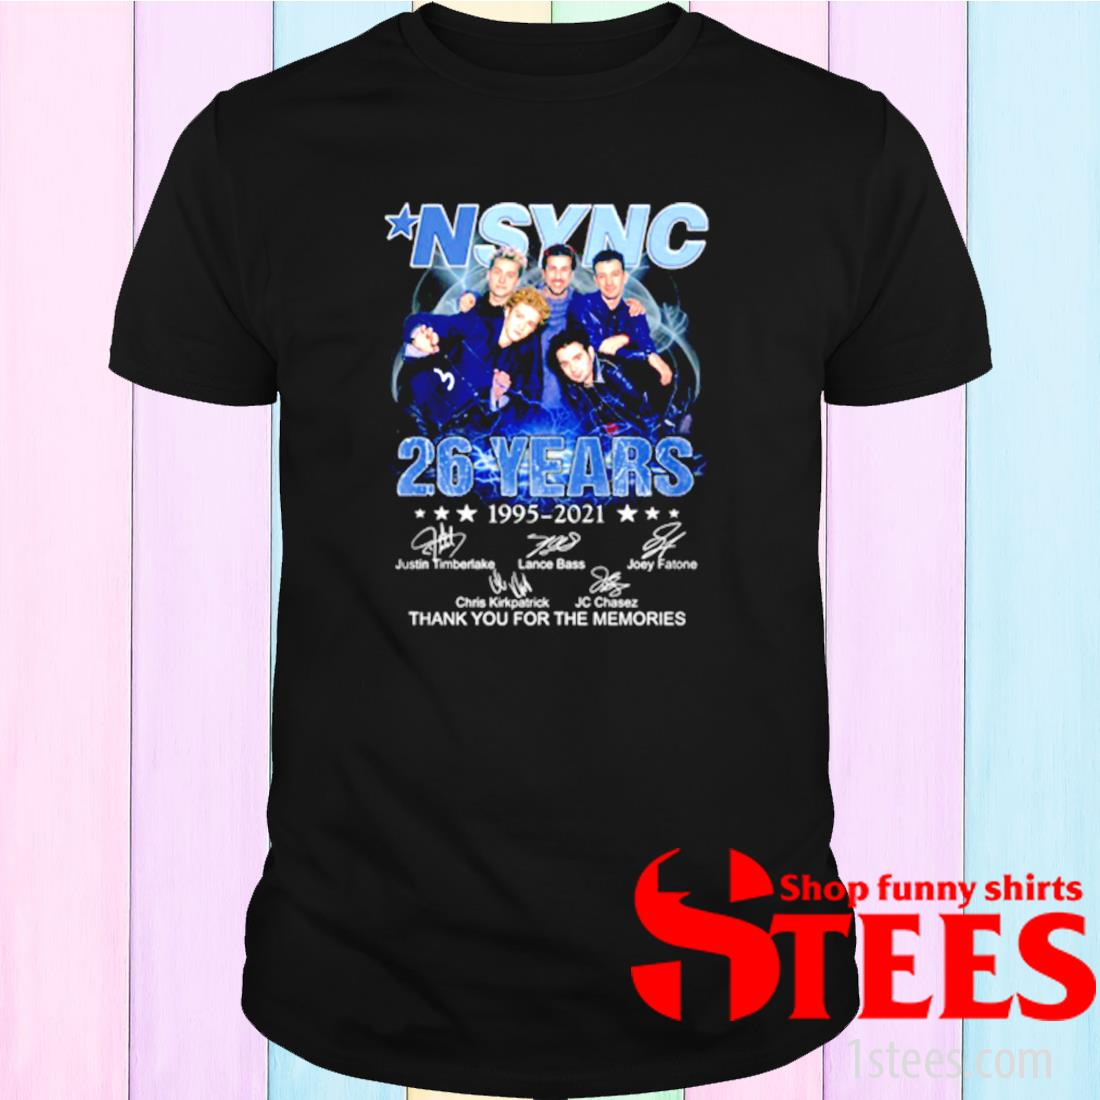 Nsync 26 Years 1995-2021 Thank You For The Memories Signature Shirt